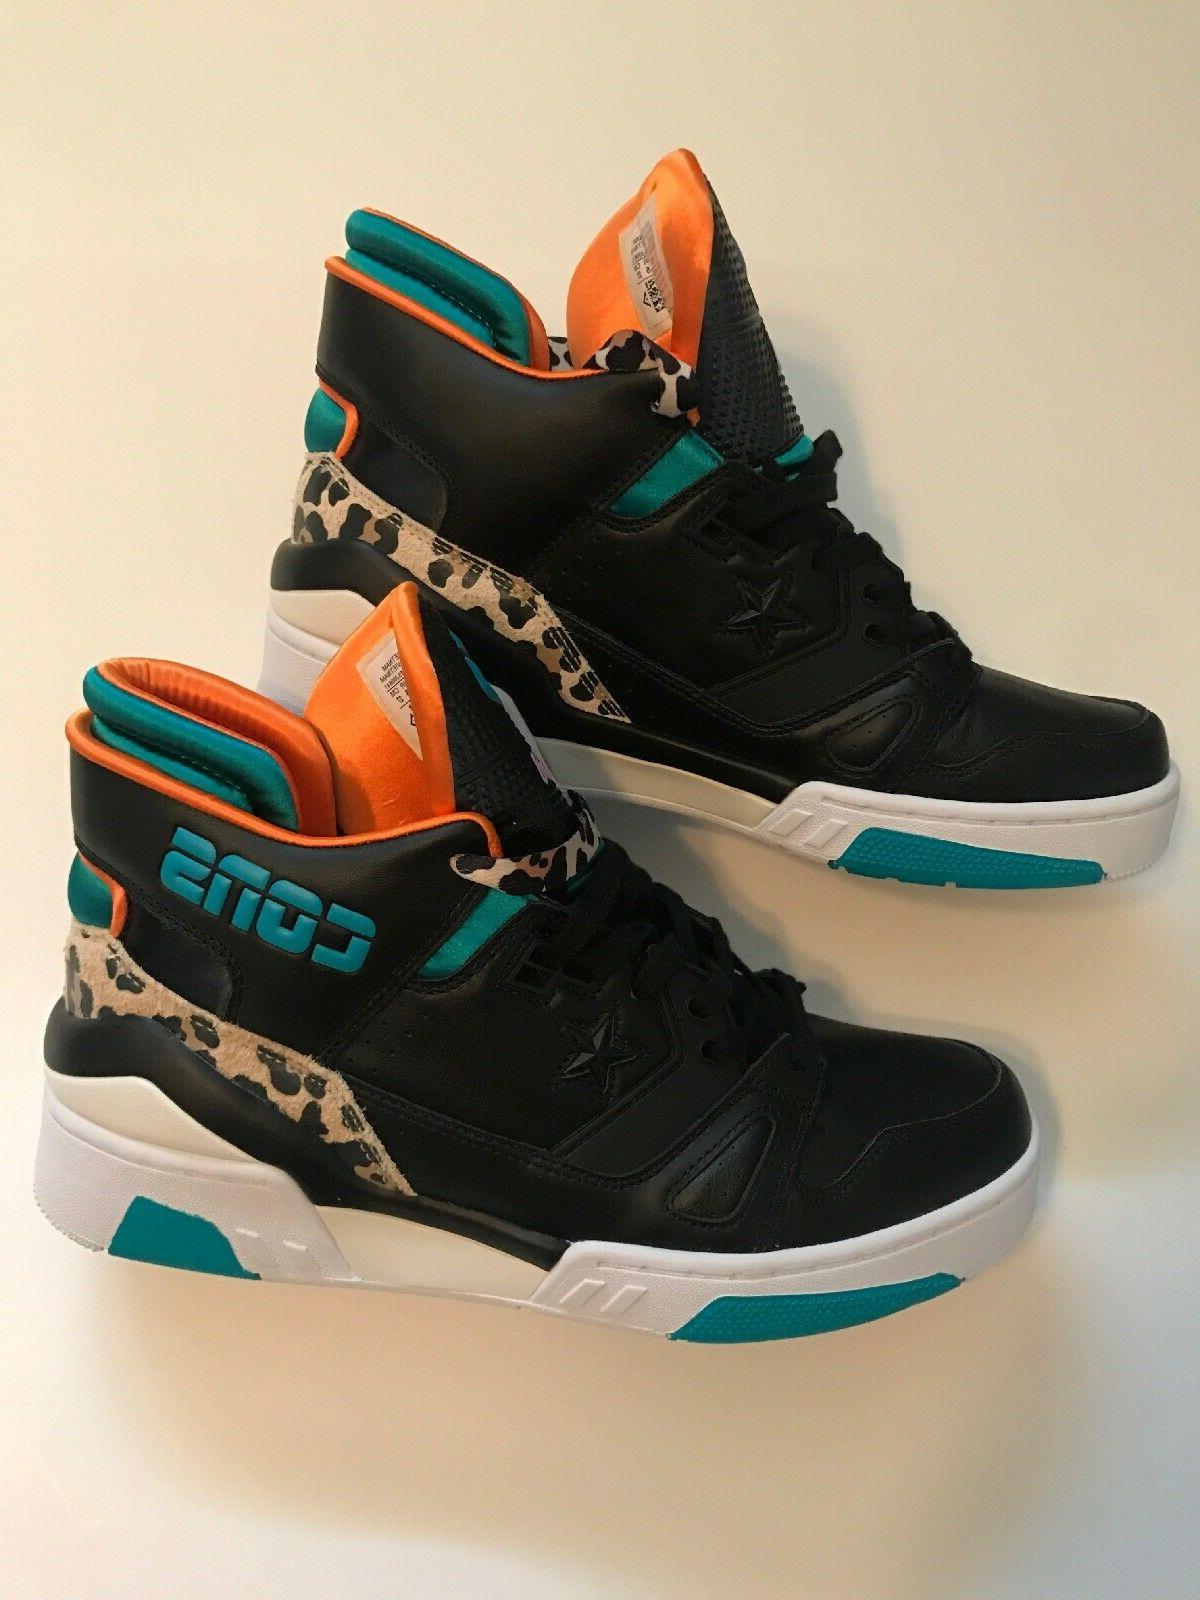 cons erx 260 basketball shoes sneakers animal